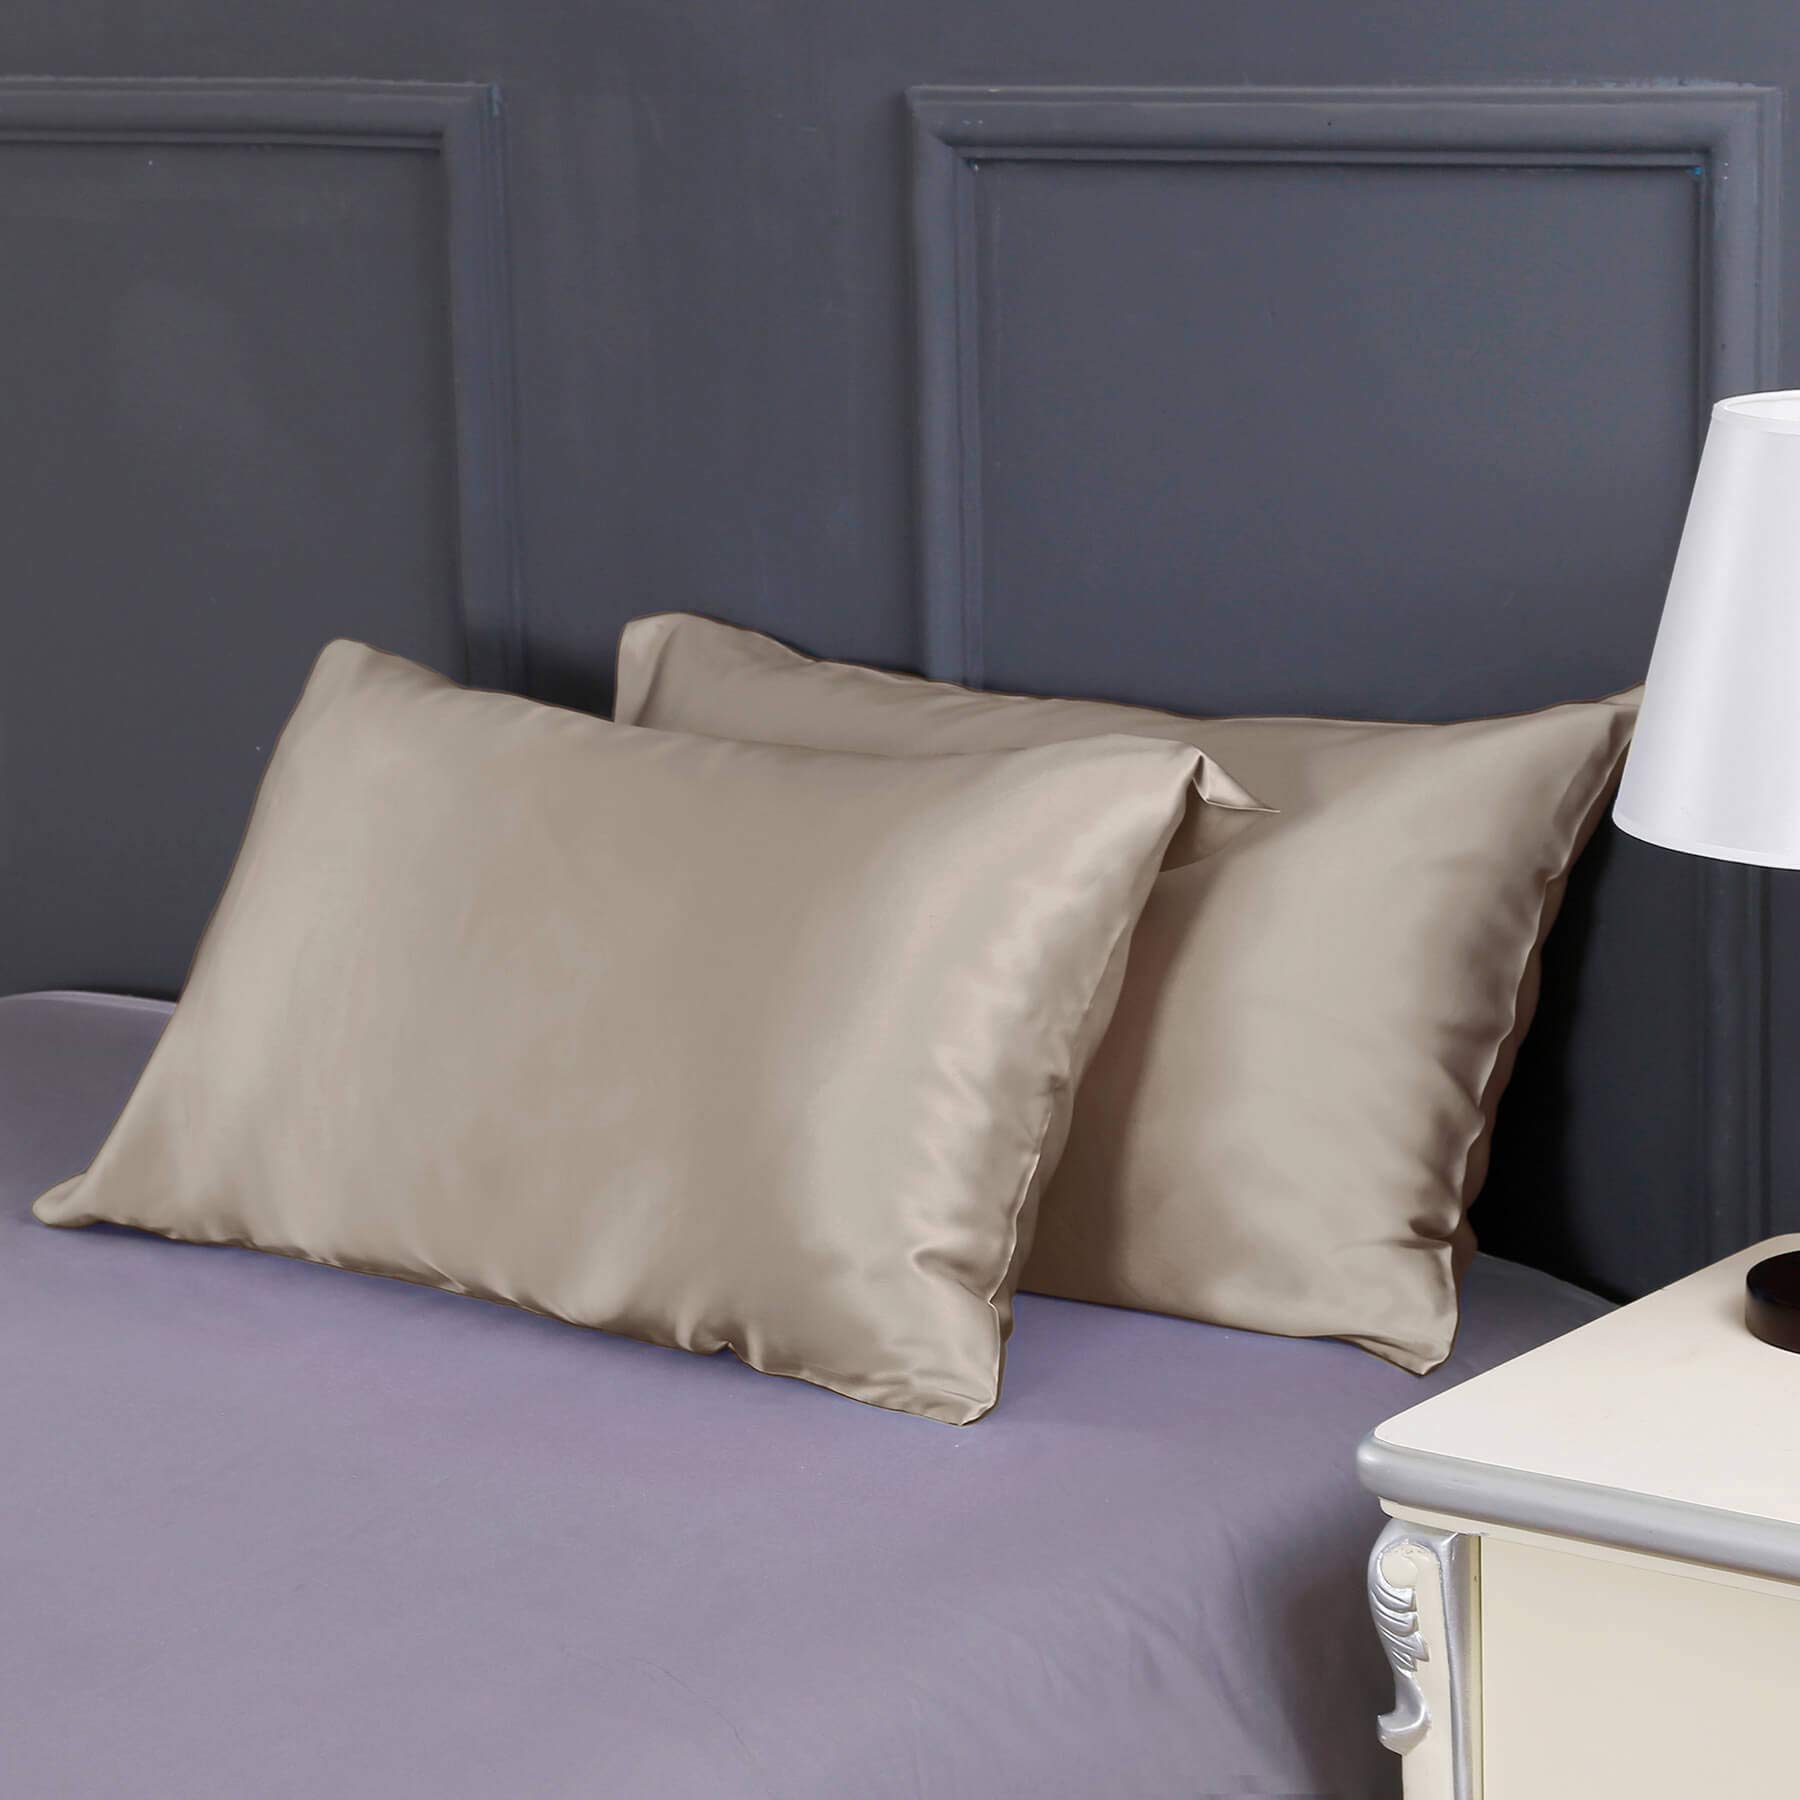 LilySilk 2pc Silk Pillowcase Set Standard Luxury Both Sides Real 19 Momme Mulberry Charmeuse Taupe Standard